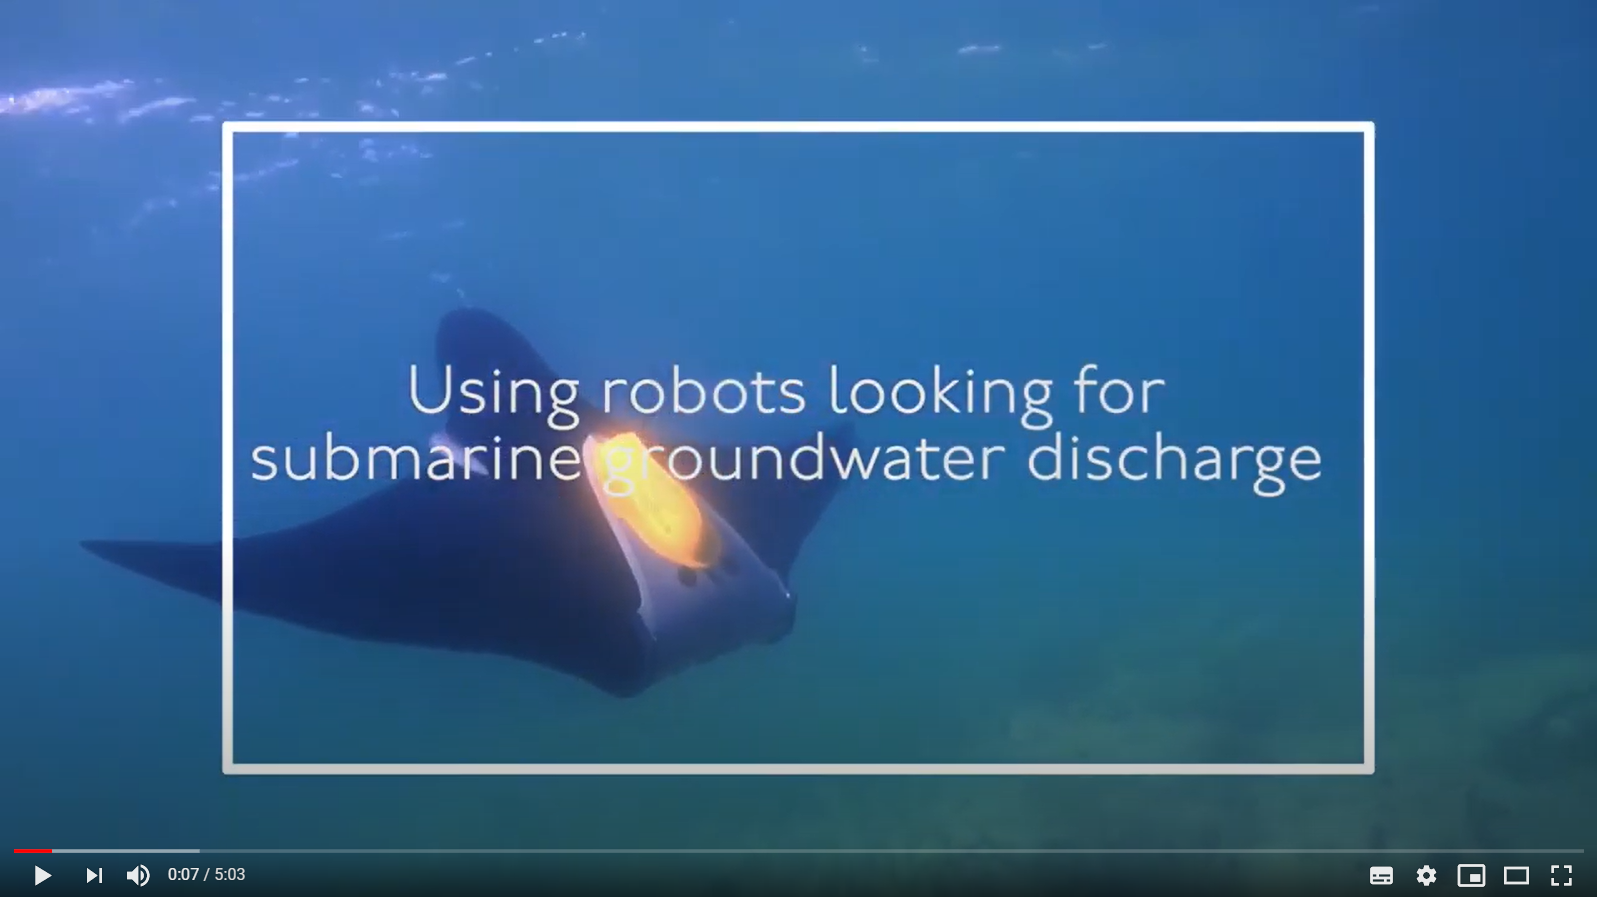 Video about Seamount project